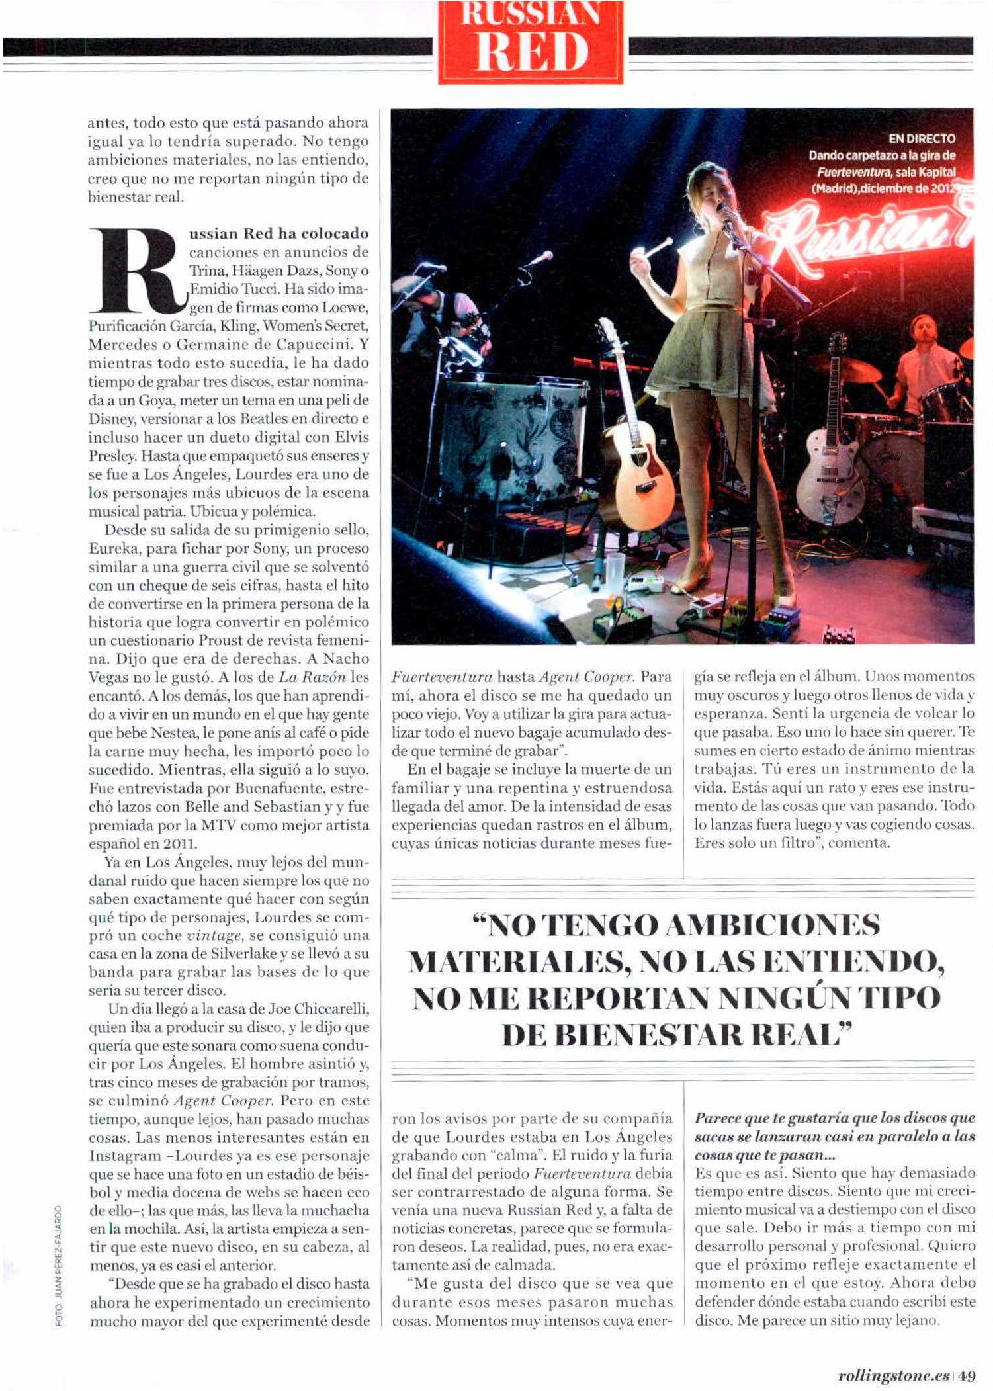 ( ROLLING STONE ) 01/02/2014